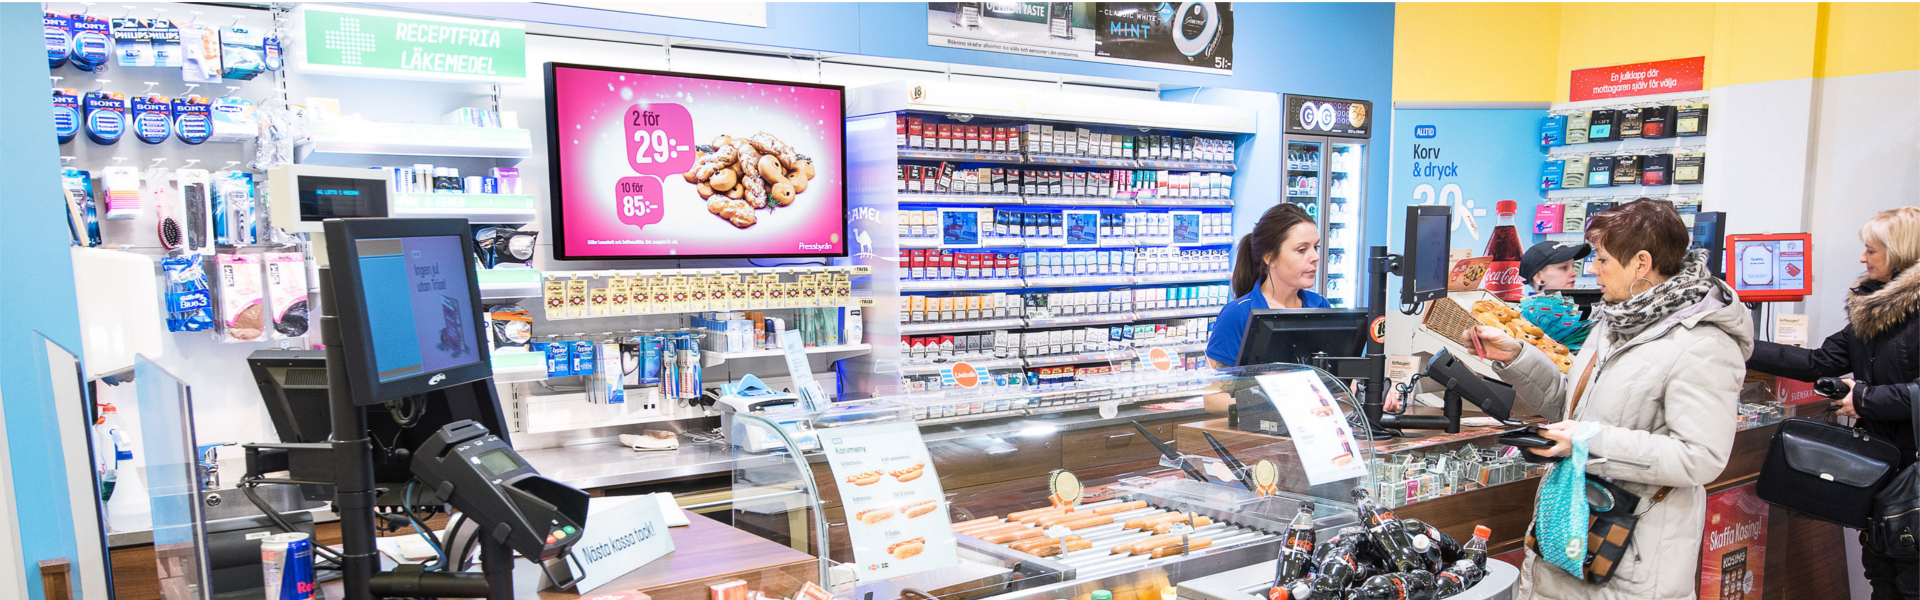 Digital Signage Convenience Stores & Grocery Stores